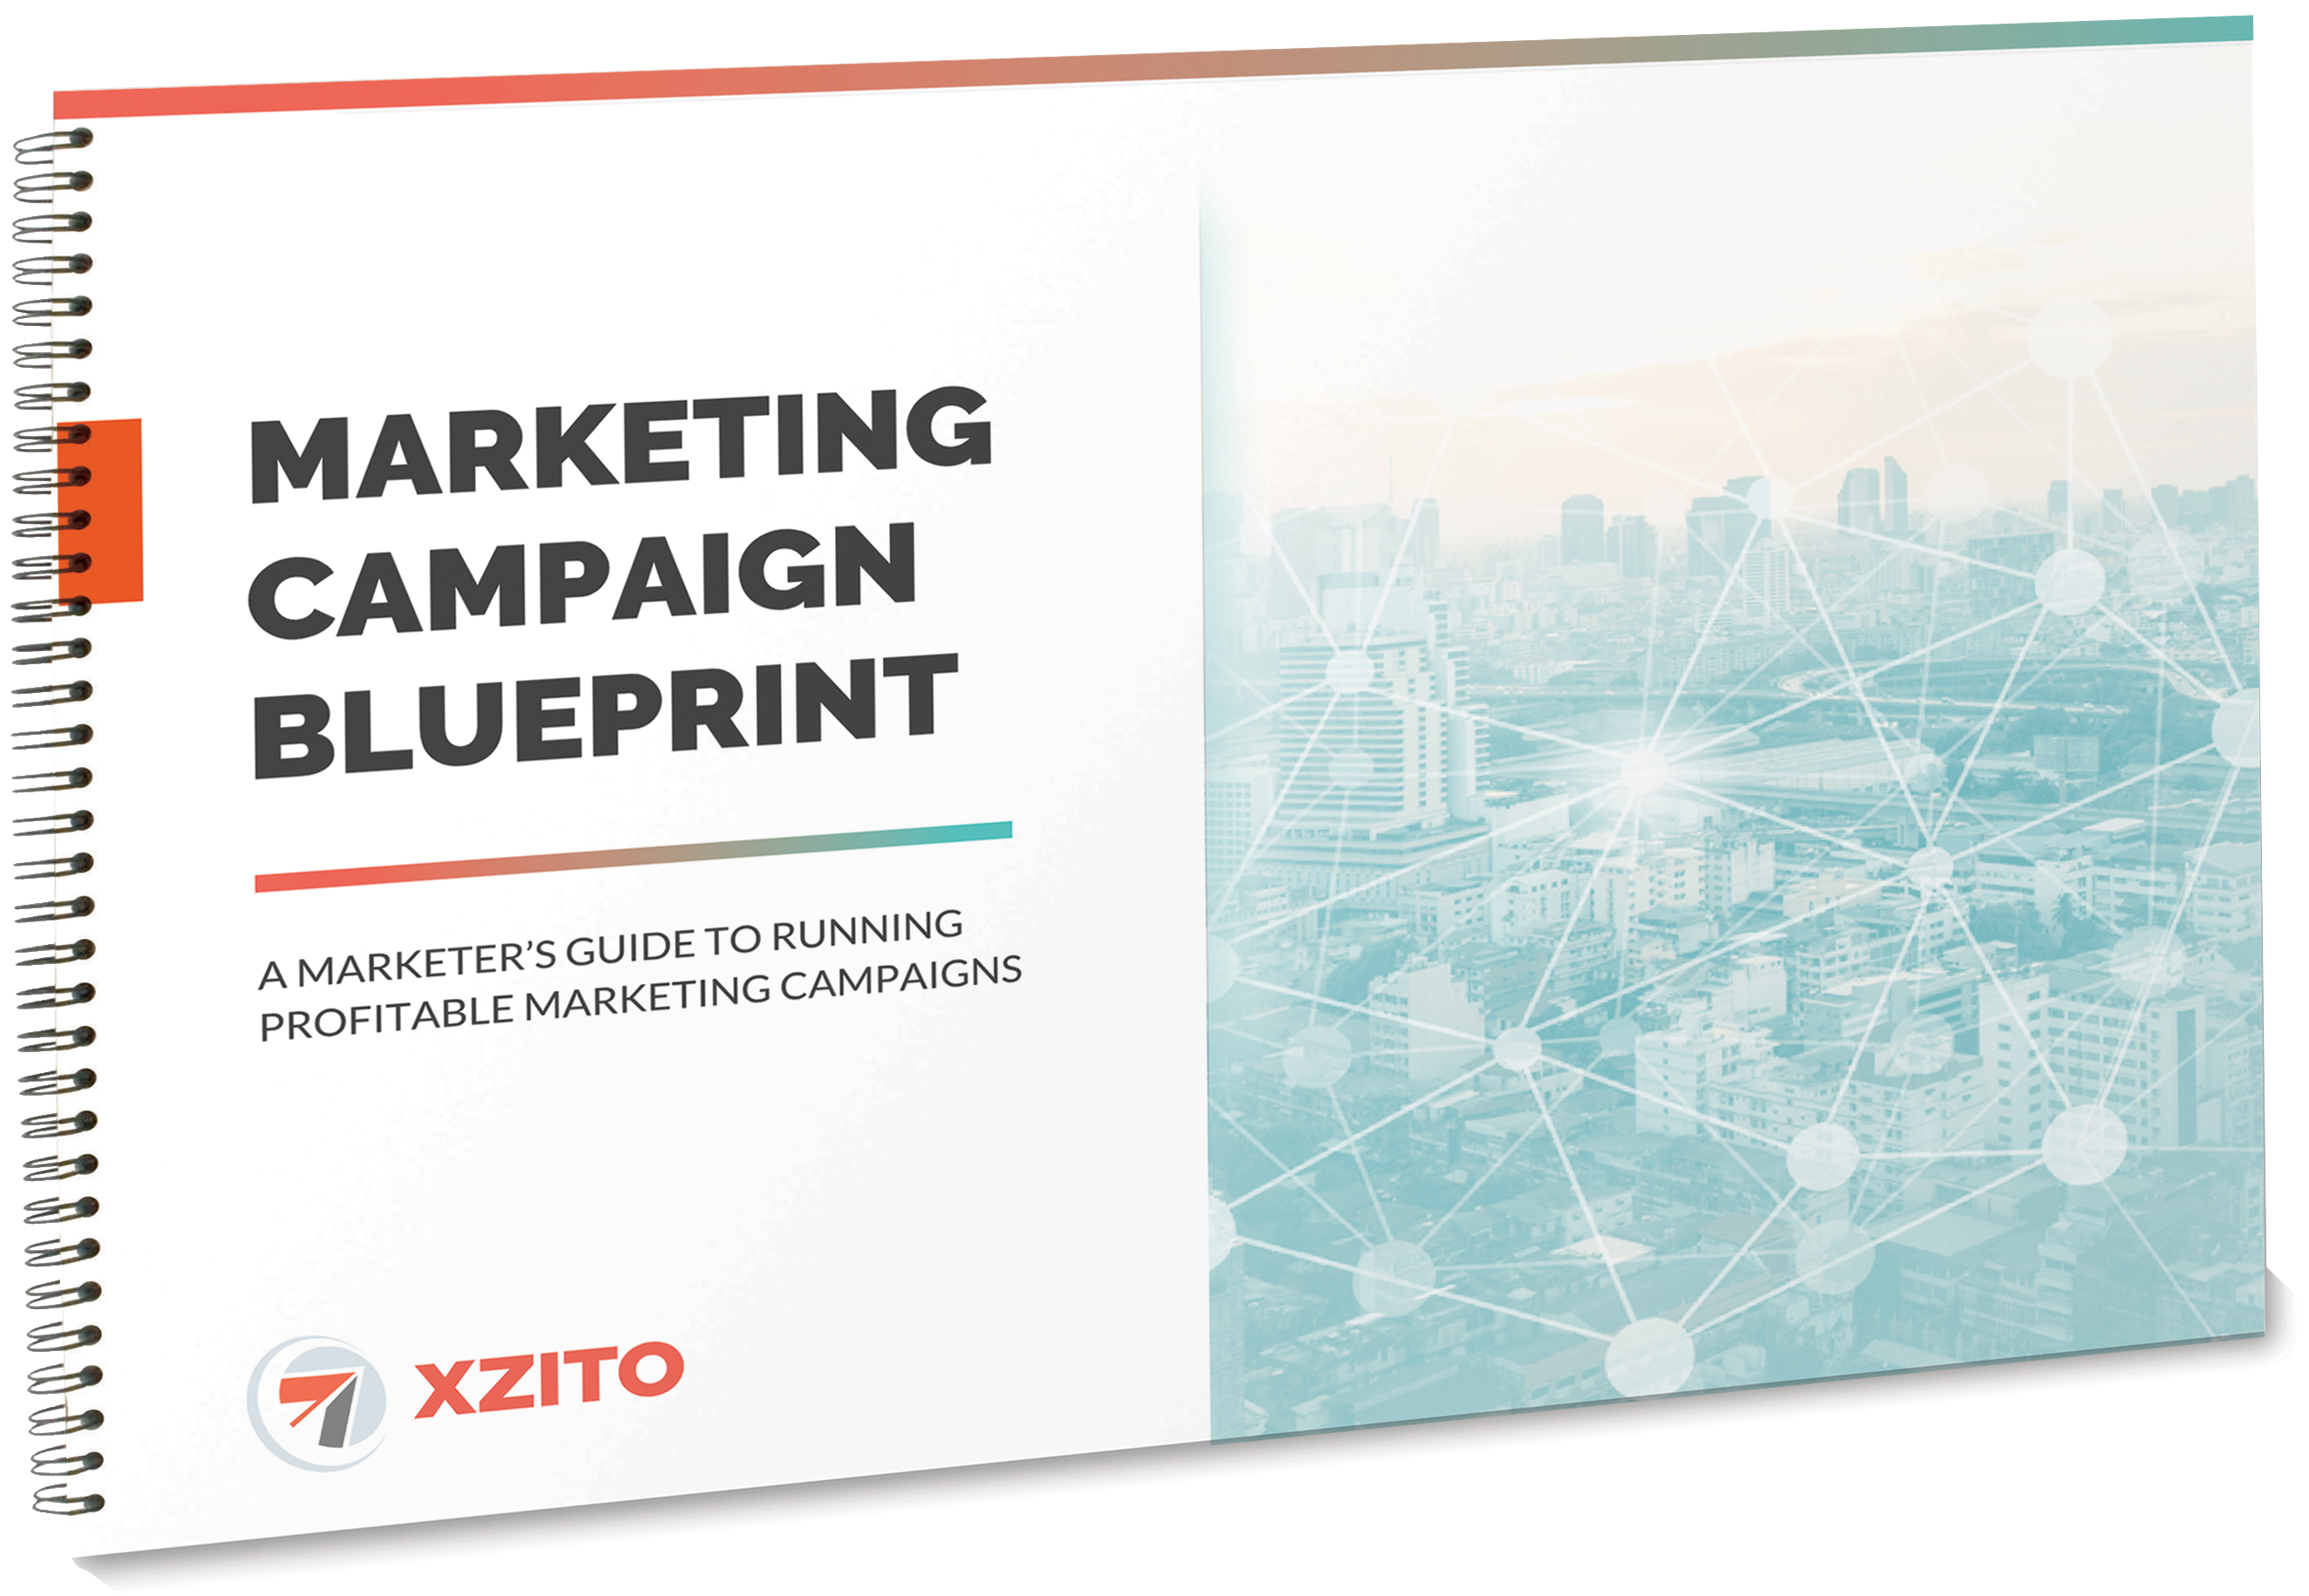 Marketing-Campaign-Blueprint-LP-image-2.png